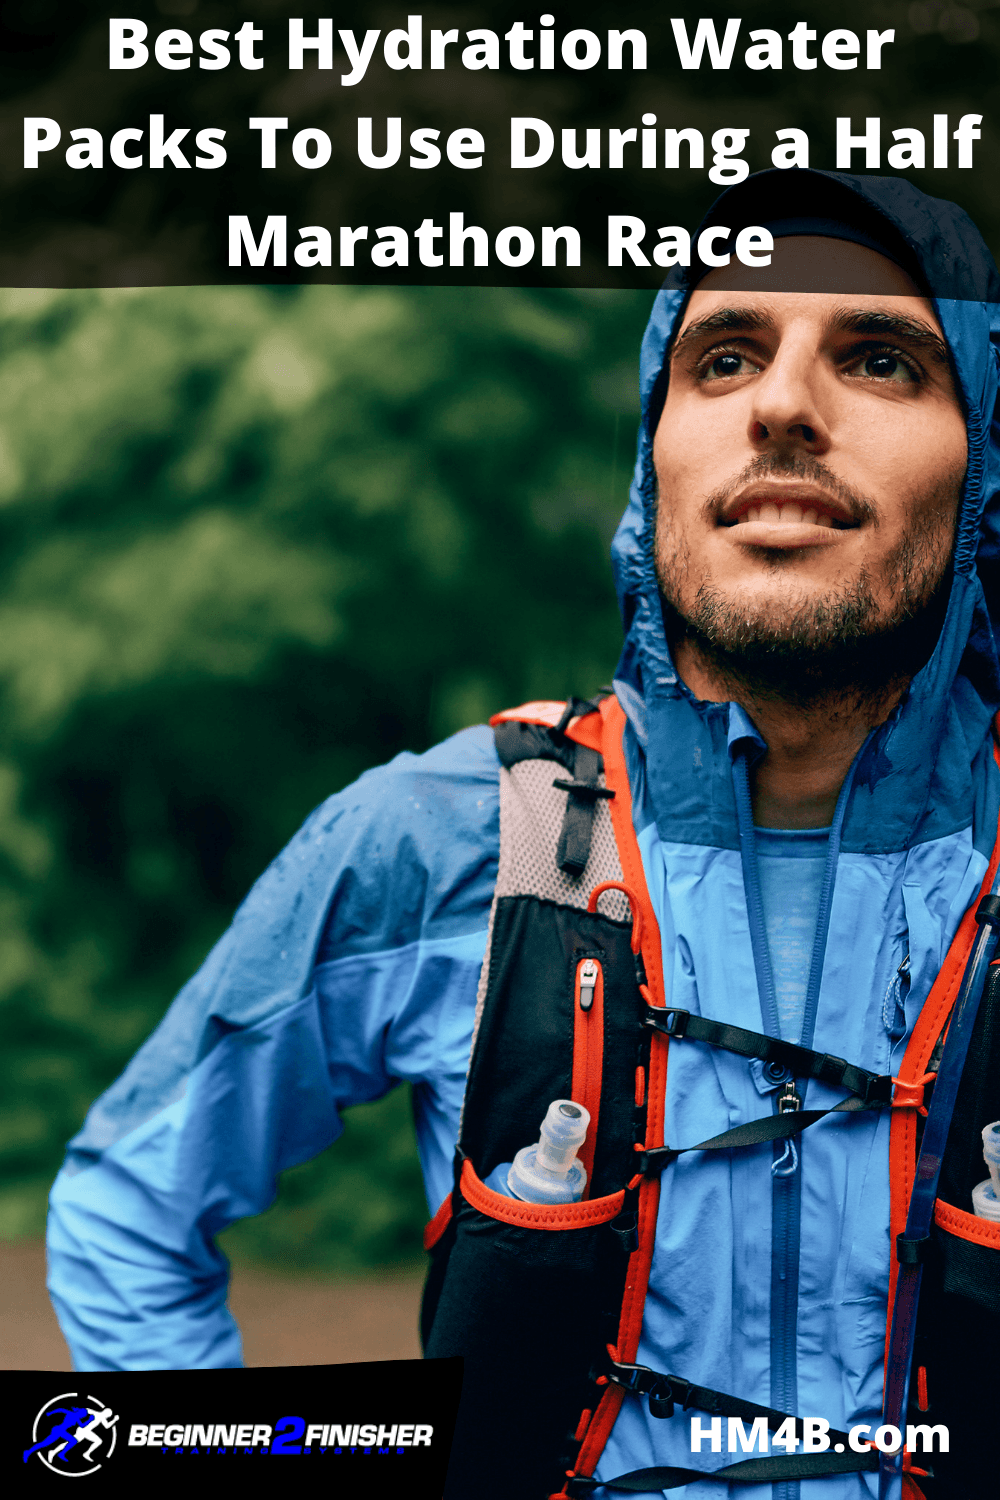 Best Hydration Water Pack For A Half Marathon or Marathon Race